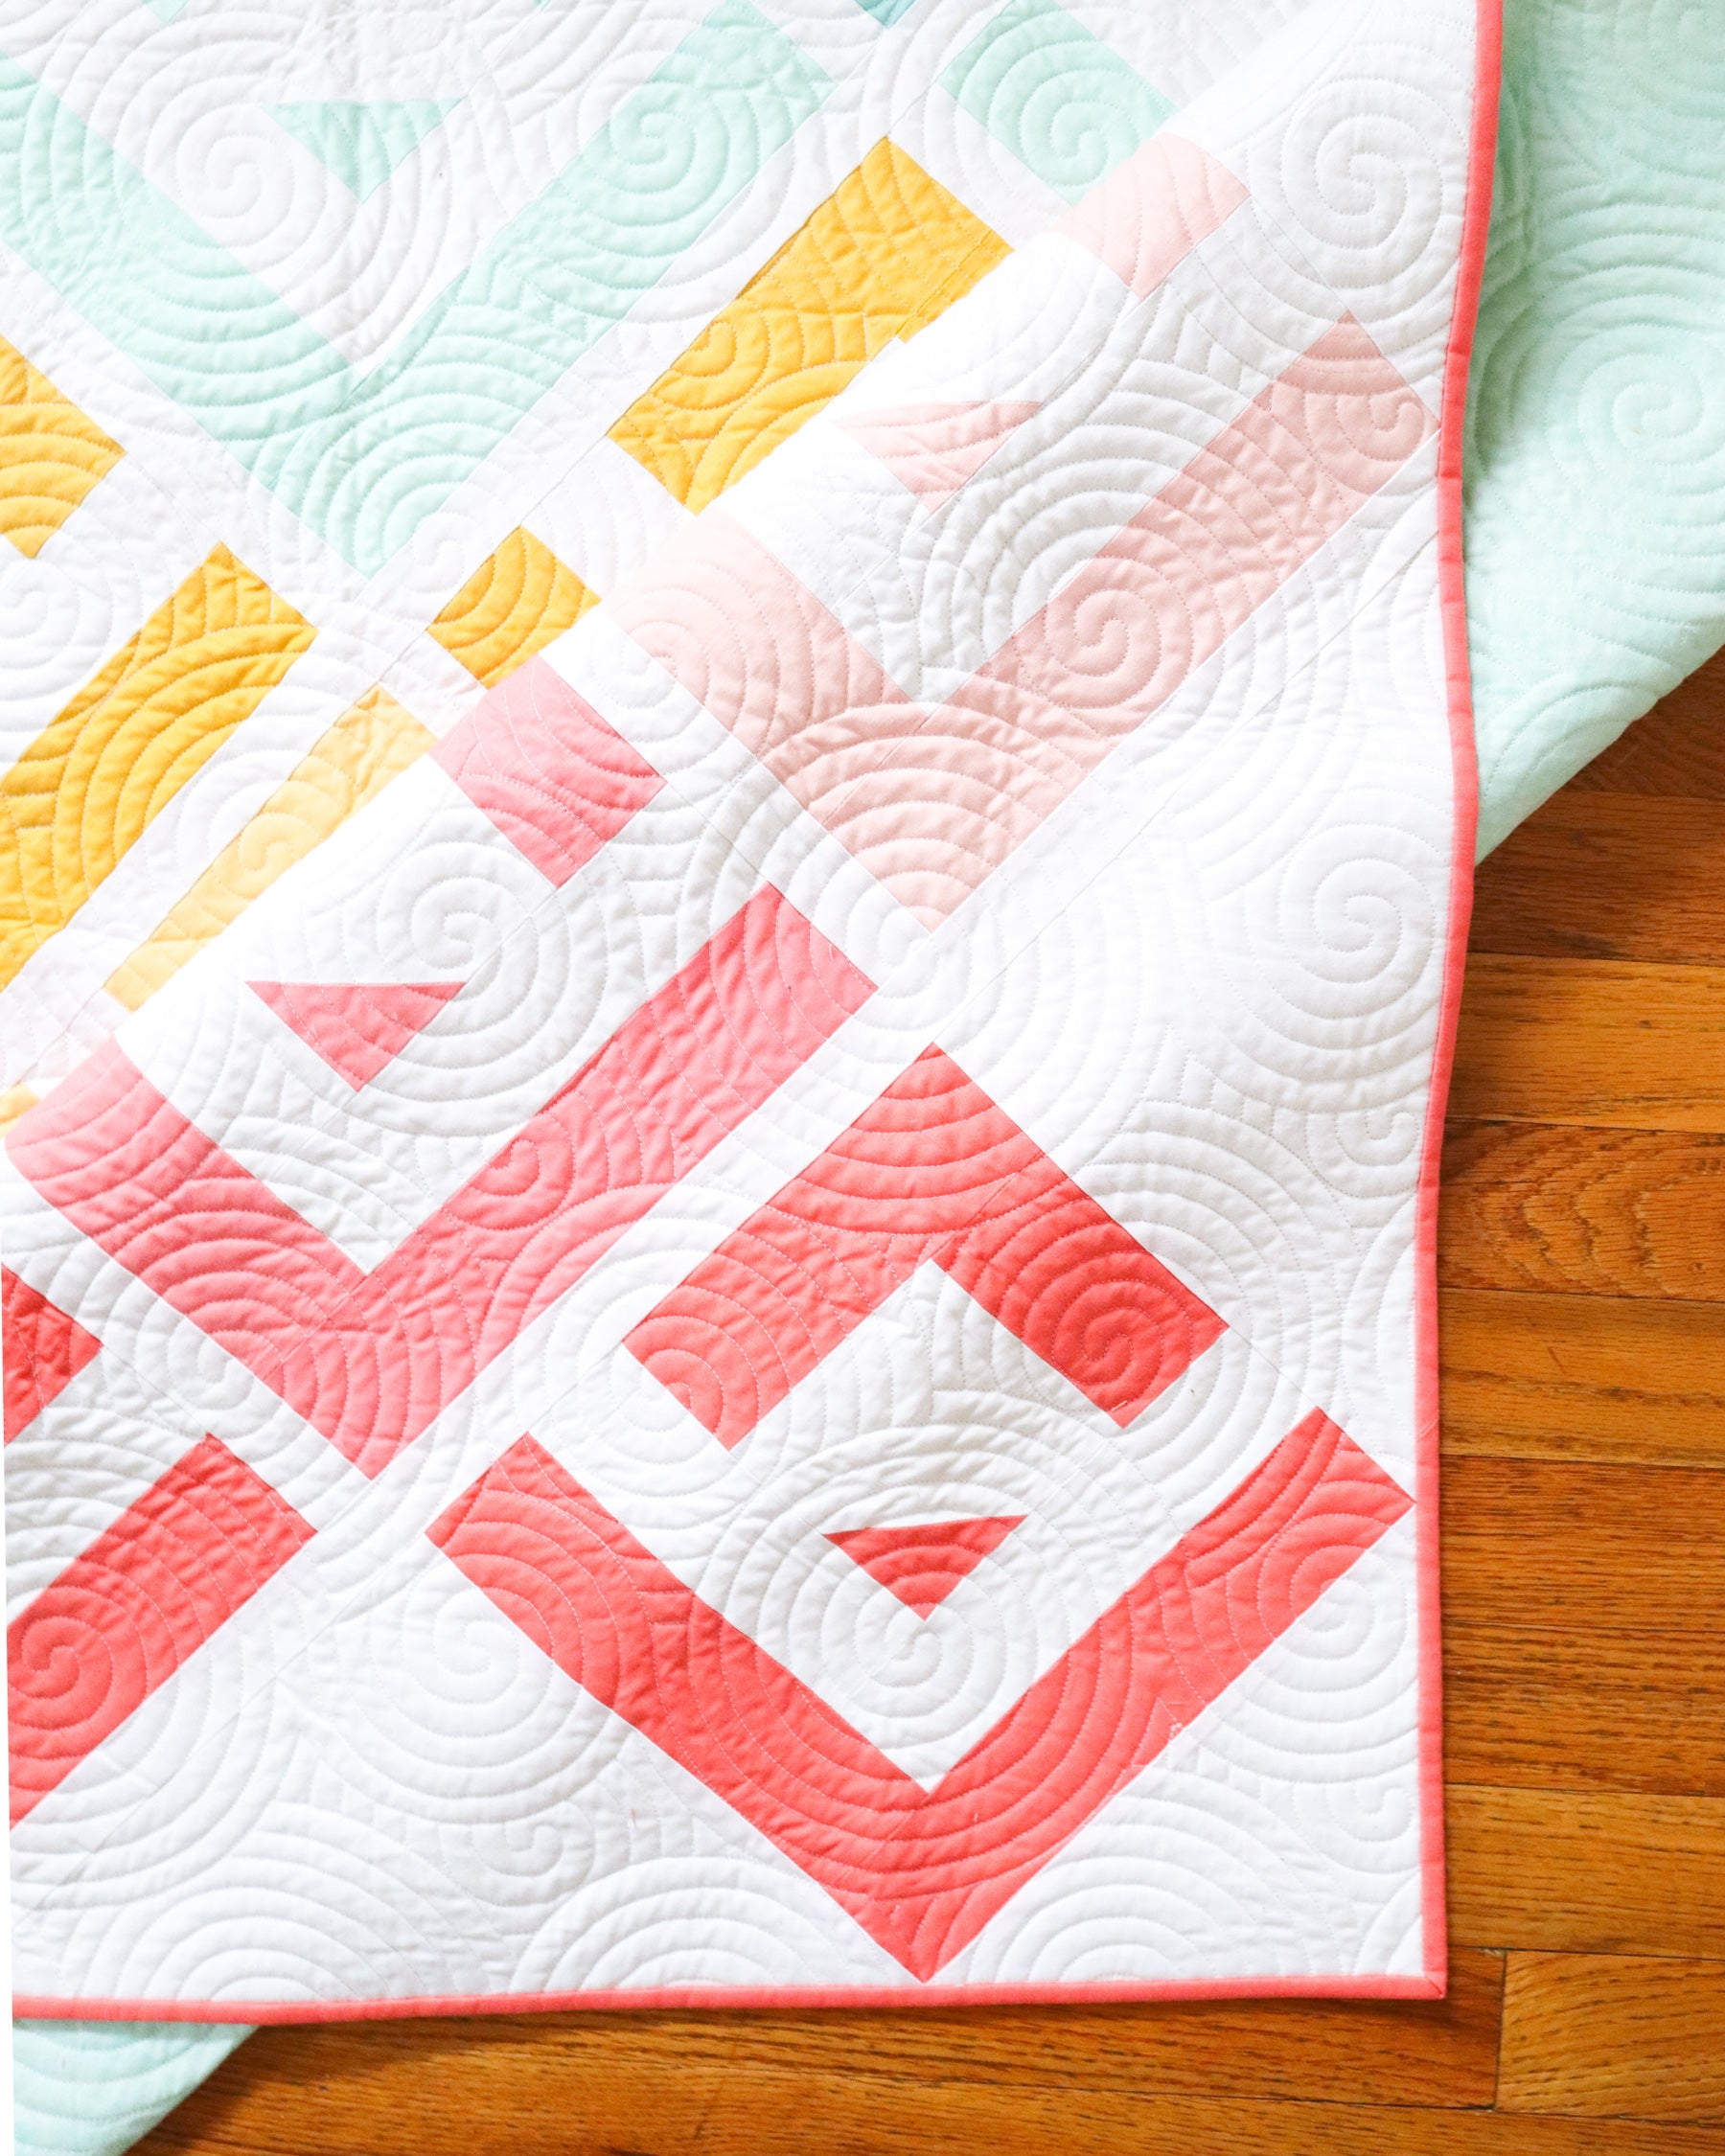 Cabin Valley by Cotton and Joy - long arm quilting detail